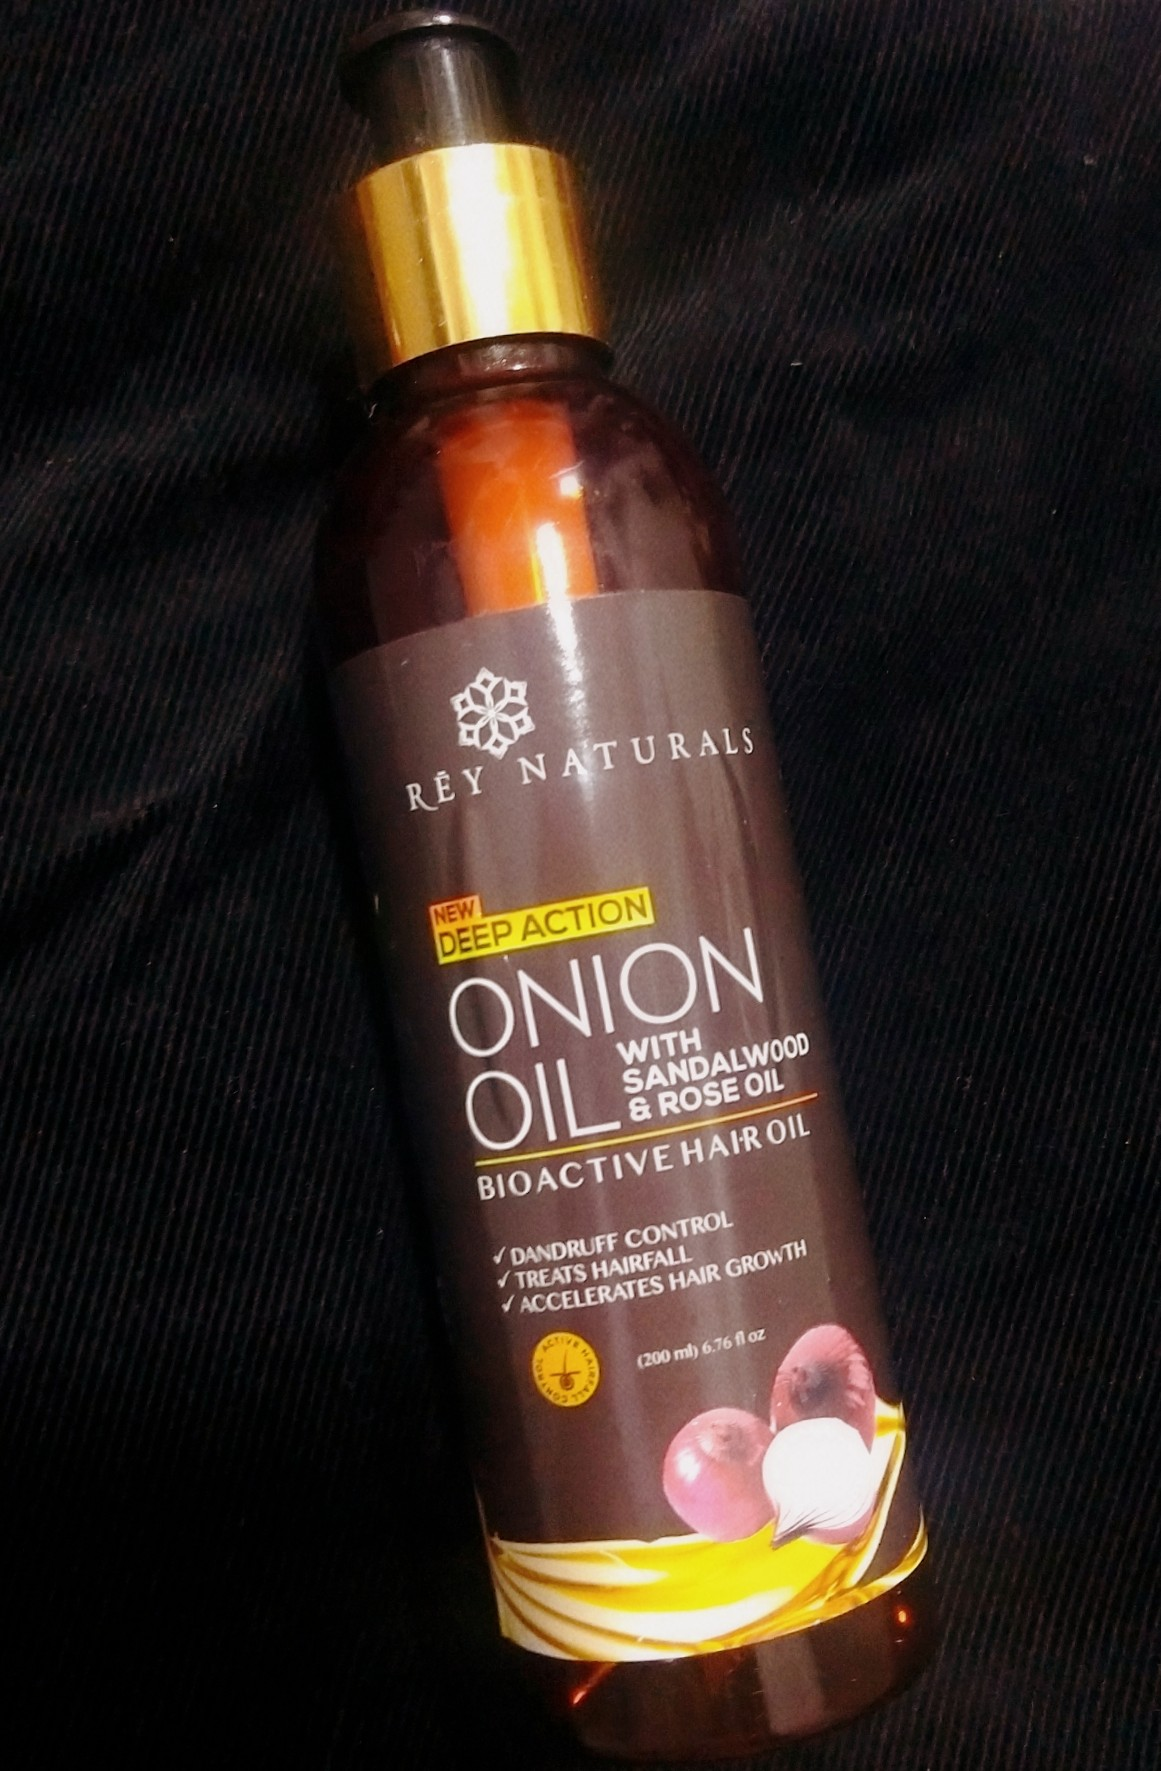 Rey Naturals Onion Hair Oil with 14 Essential Oils-Plethora of Hair Goodness-By tipsybylooks-5